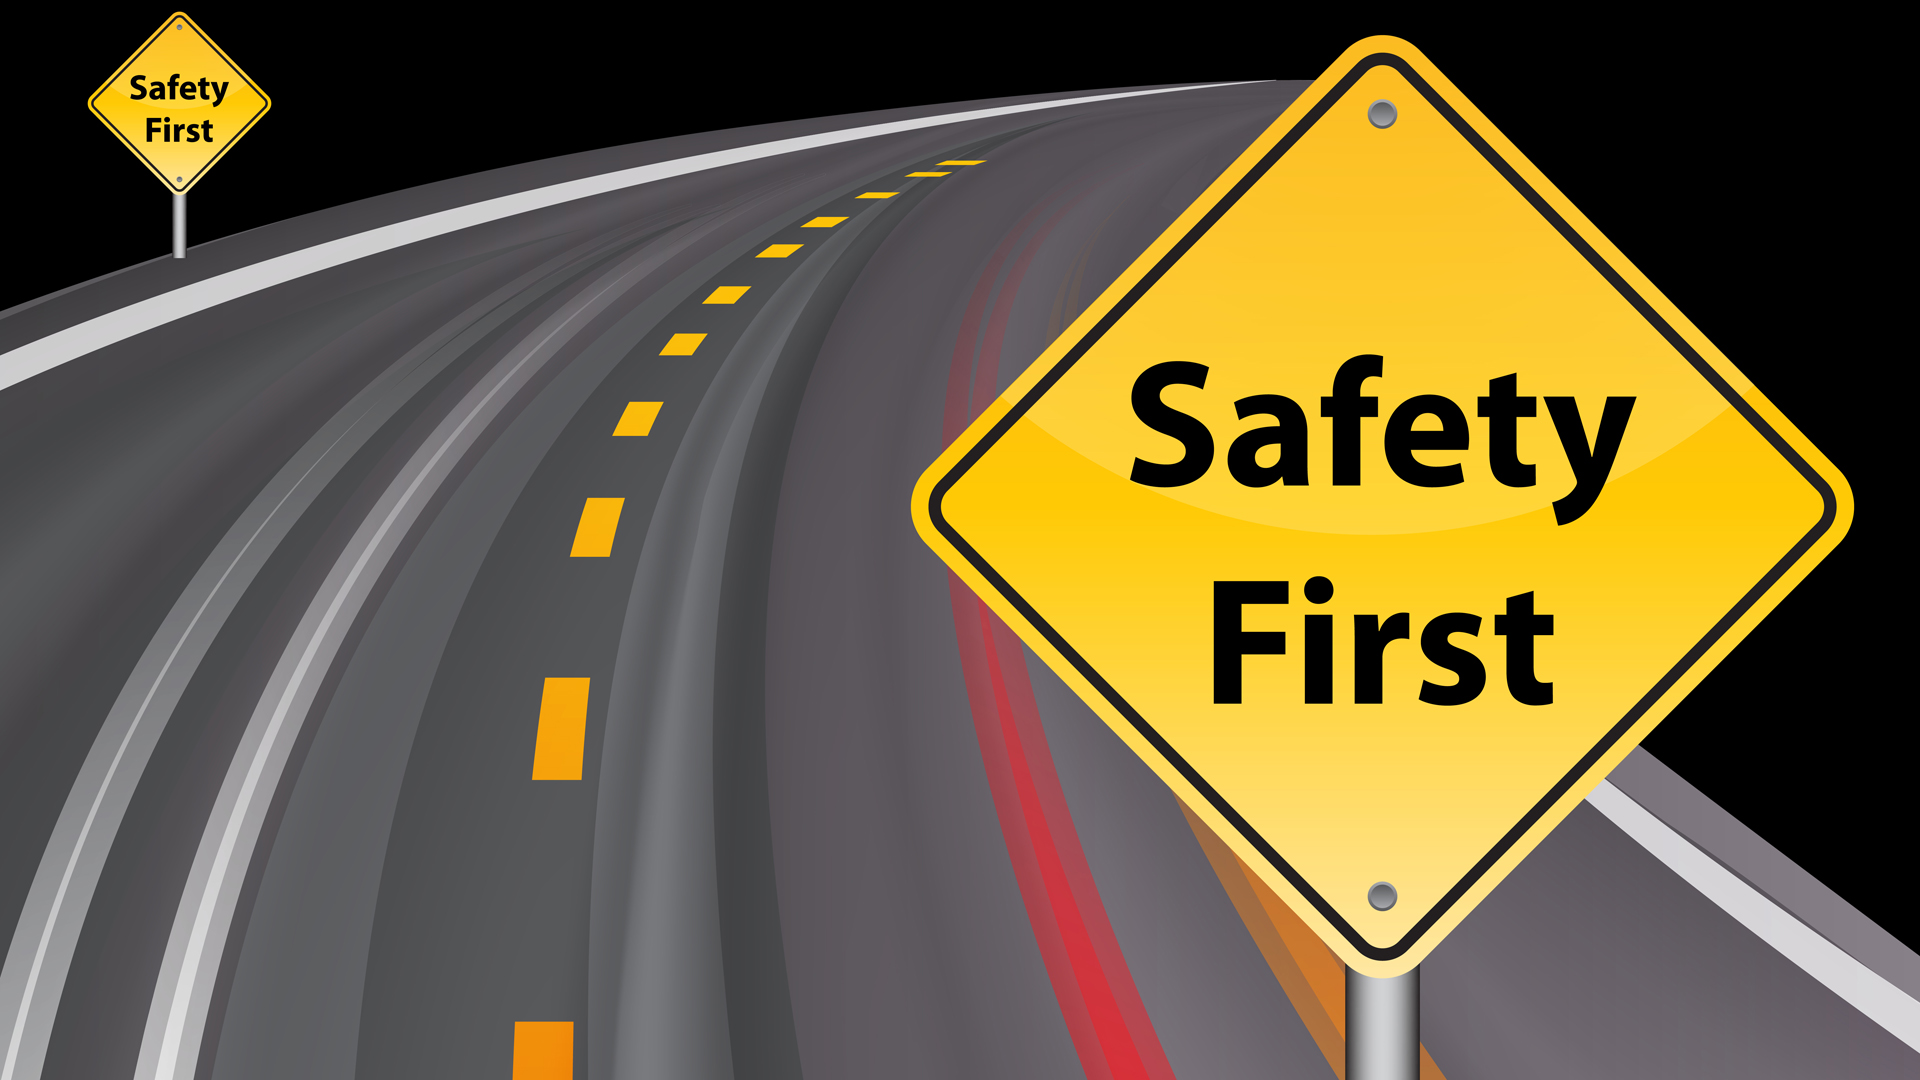 ss safety first road sign